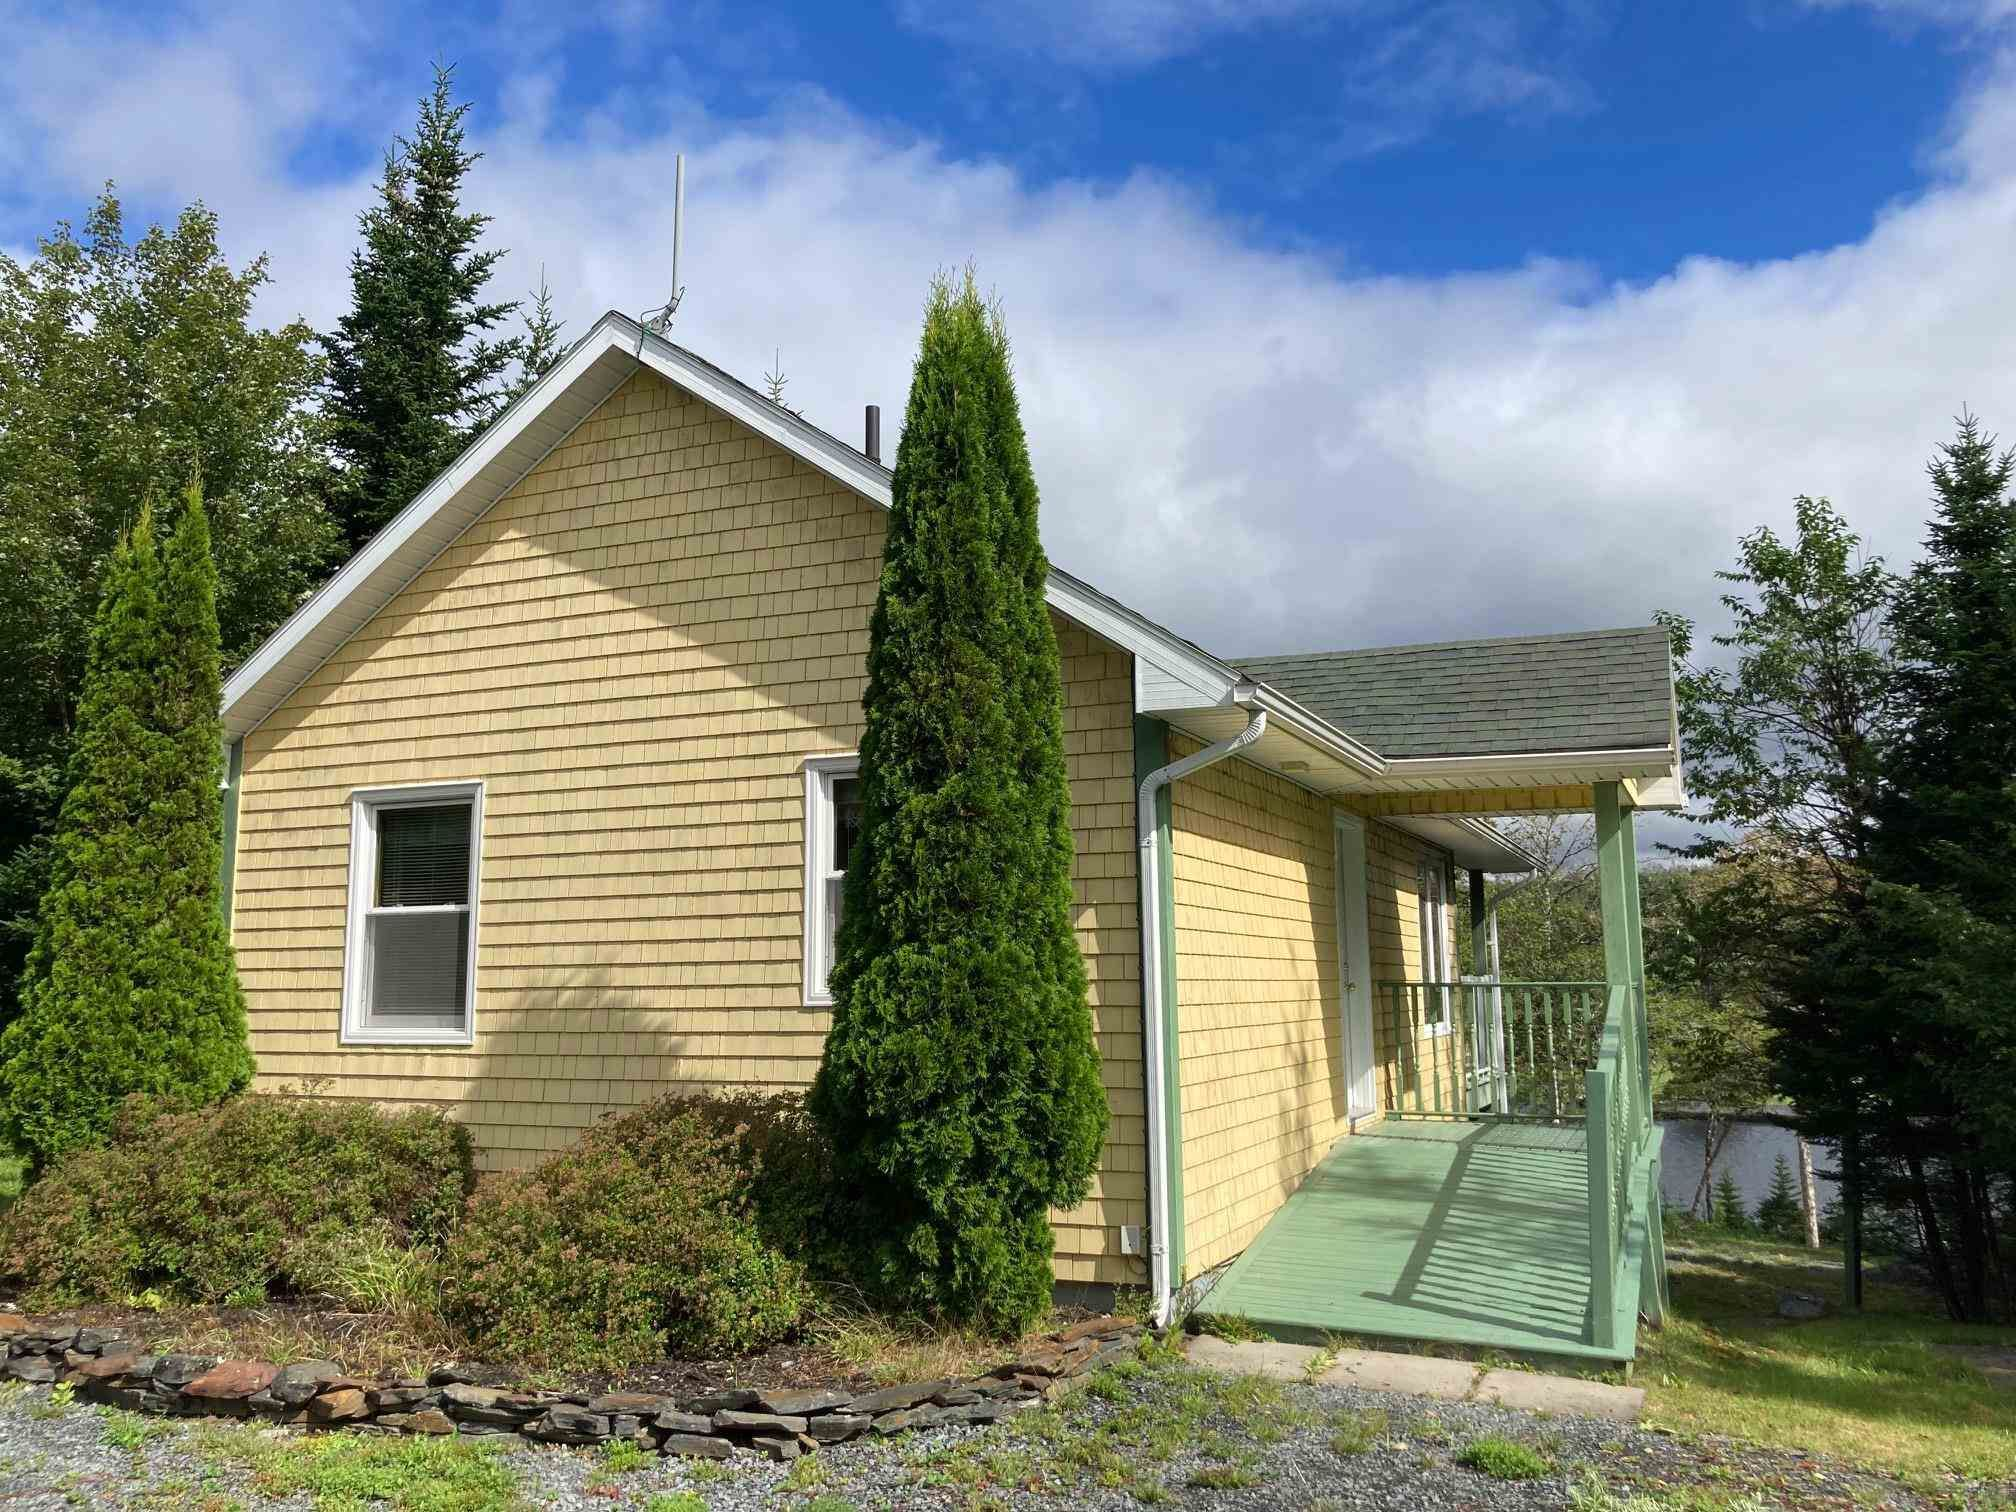 Main Photo: 491 Anderson Drive in Goldenville: 303-Guysborough County Residential for sale (Highland Region)  : MLS®# 202116185